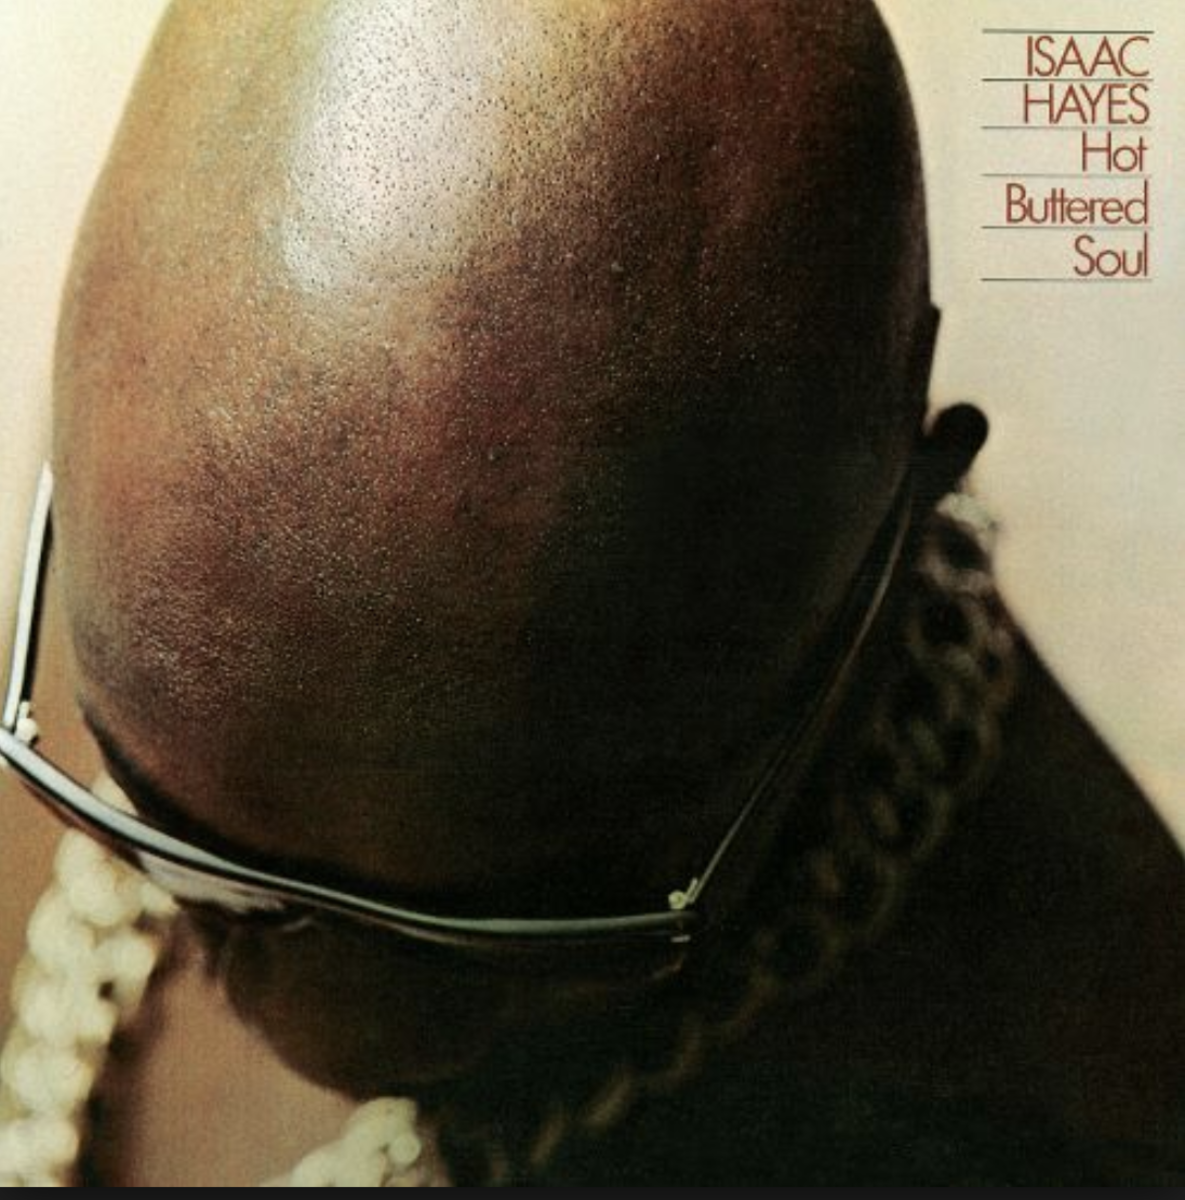 Isaac Hayes' Hot Buttered Soul.